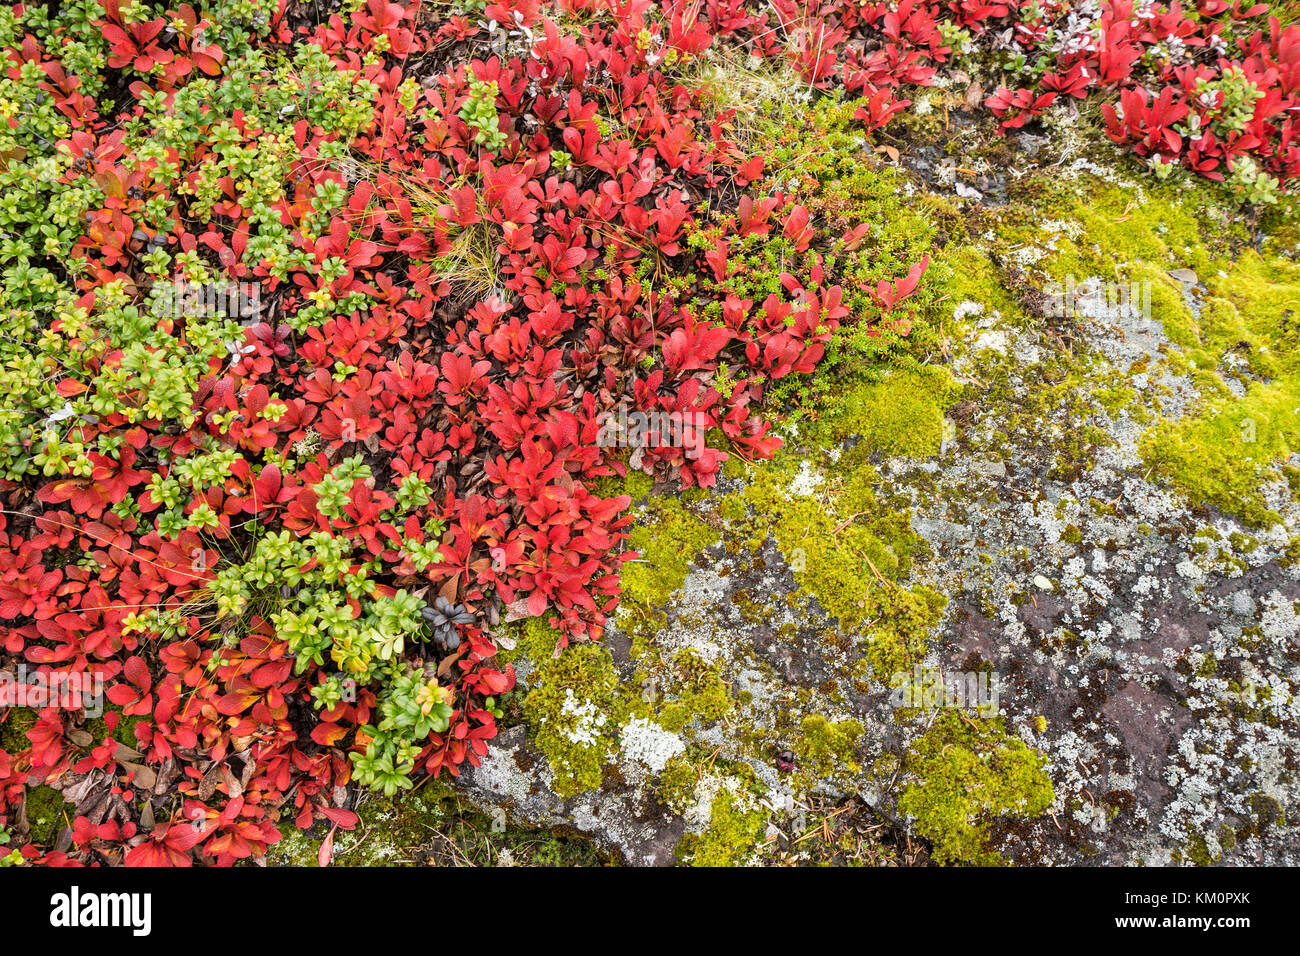 Bearberry in autumn. Fall colors - ruska time in Lapland. Finland, Nordic countries in Europe Stock Photo